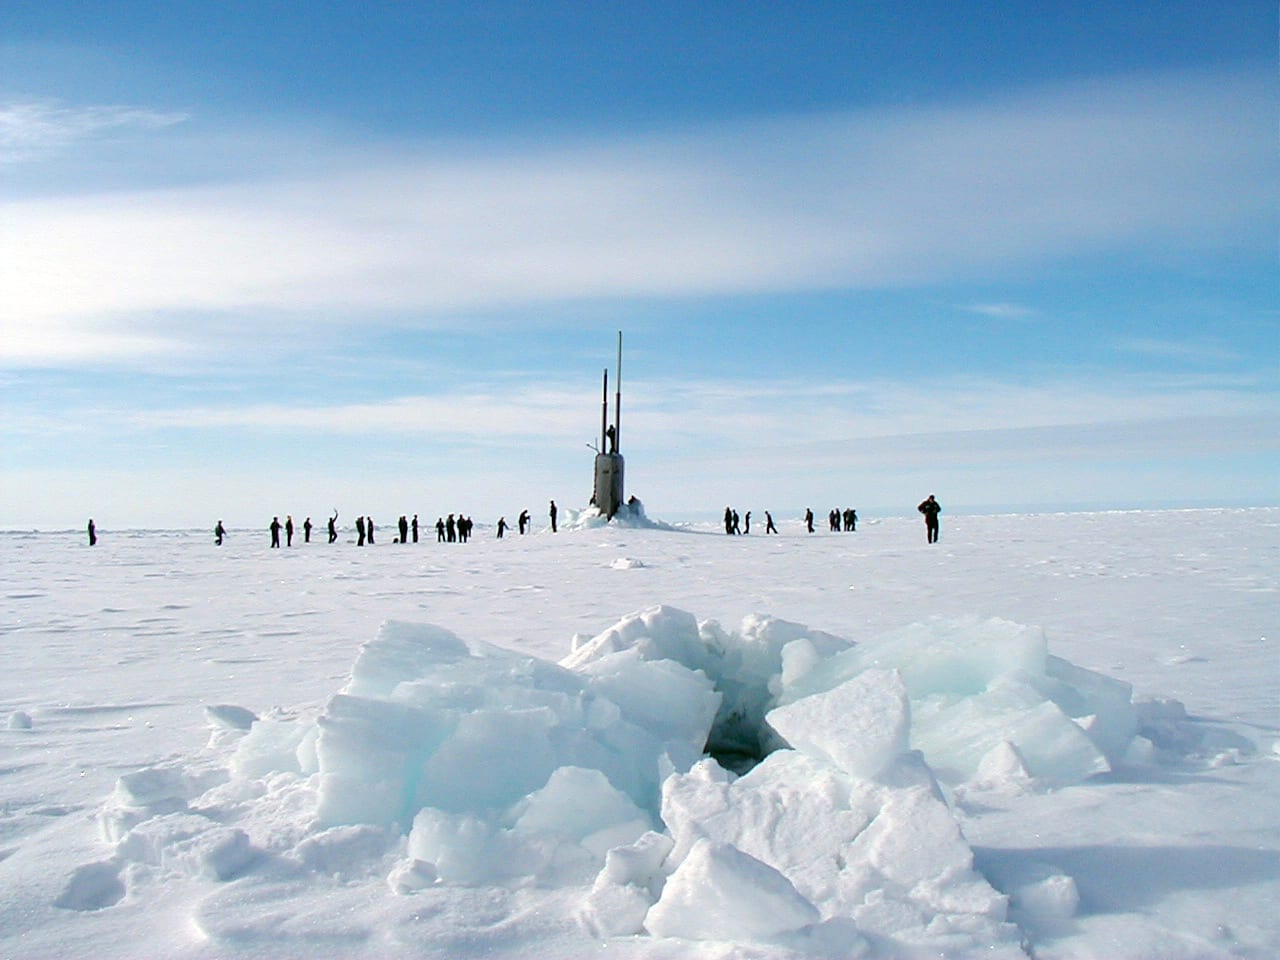 Sailors stationed aboard the Los Angeles-class fast attack submarine USS Scranton explore the Artic ice surface in 2001. Photo: U.S. Navy.